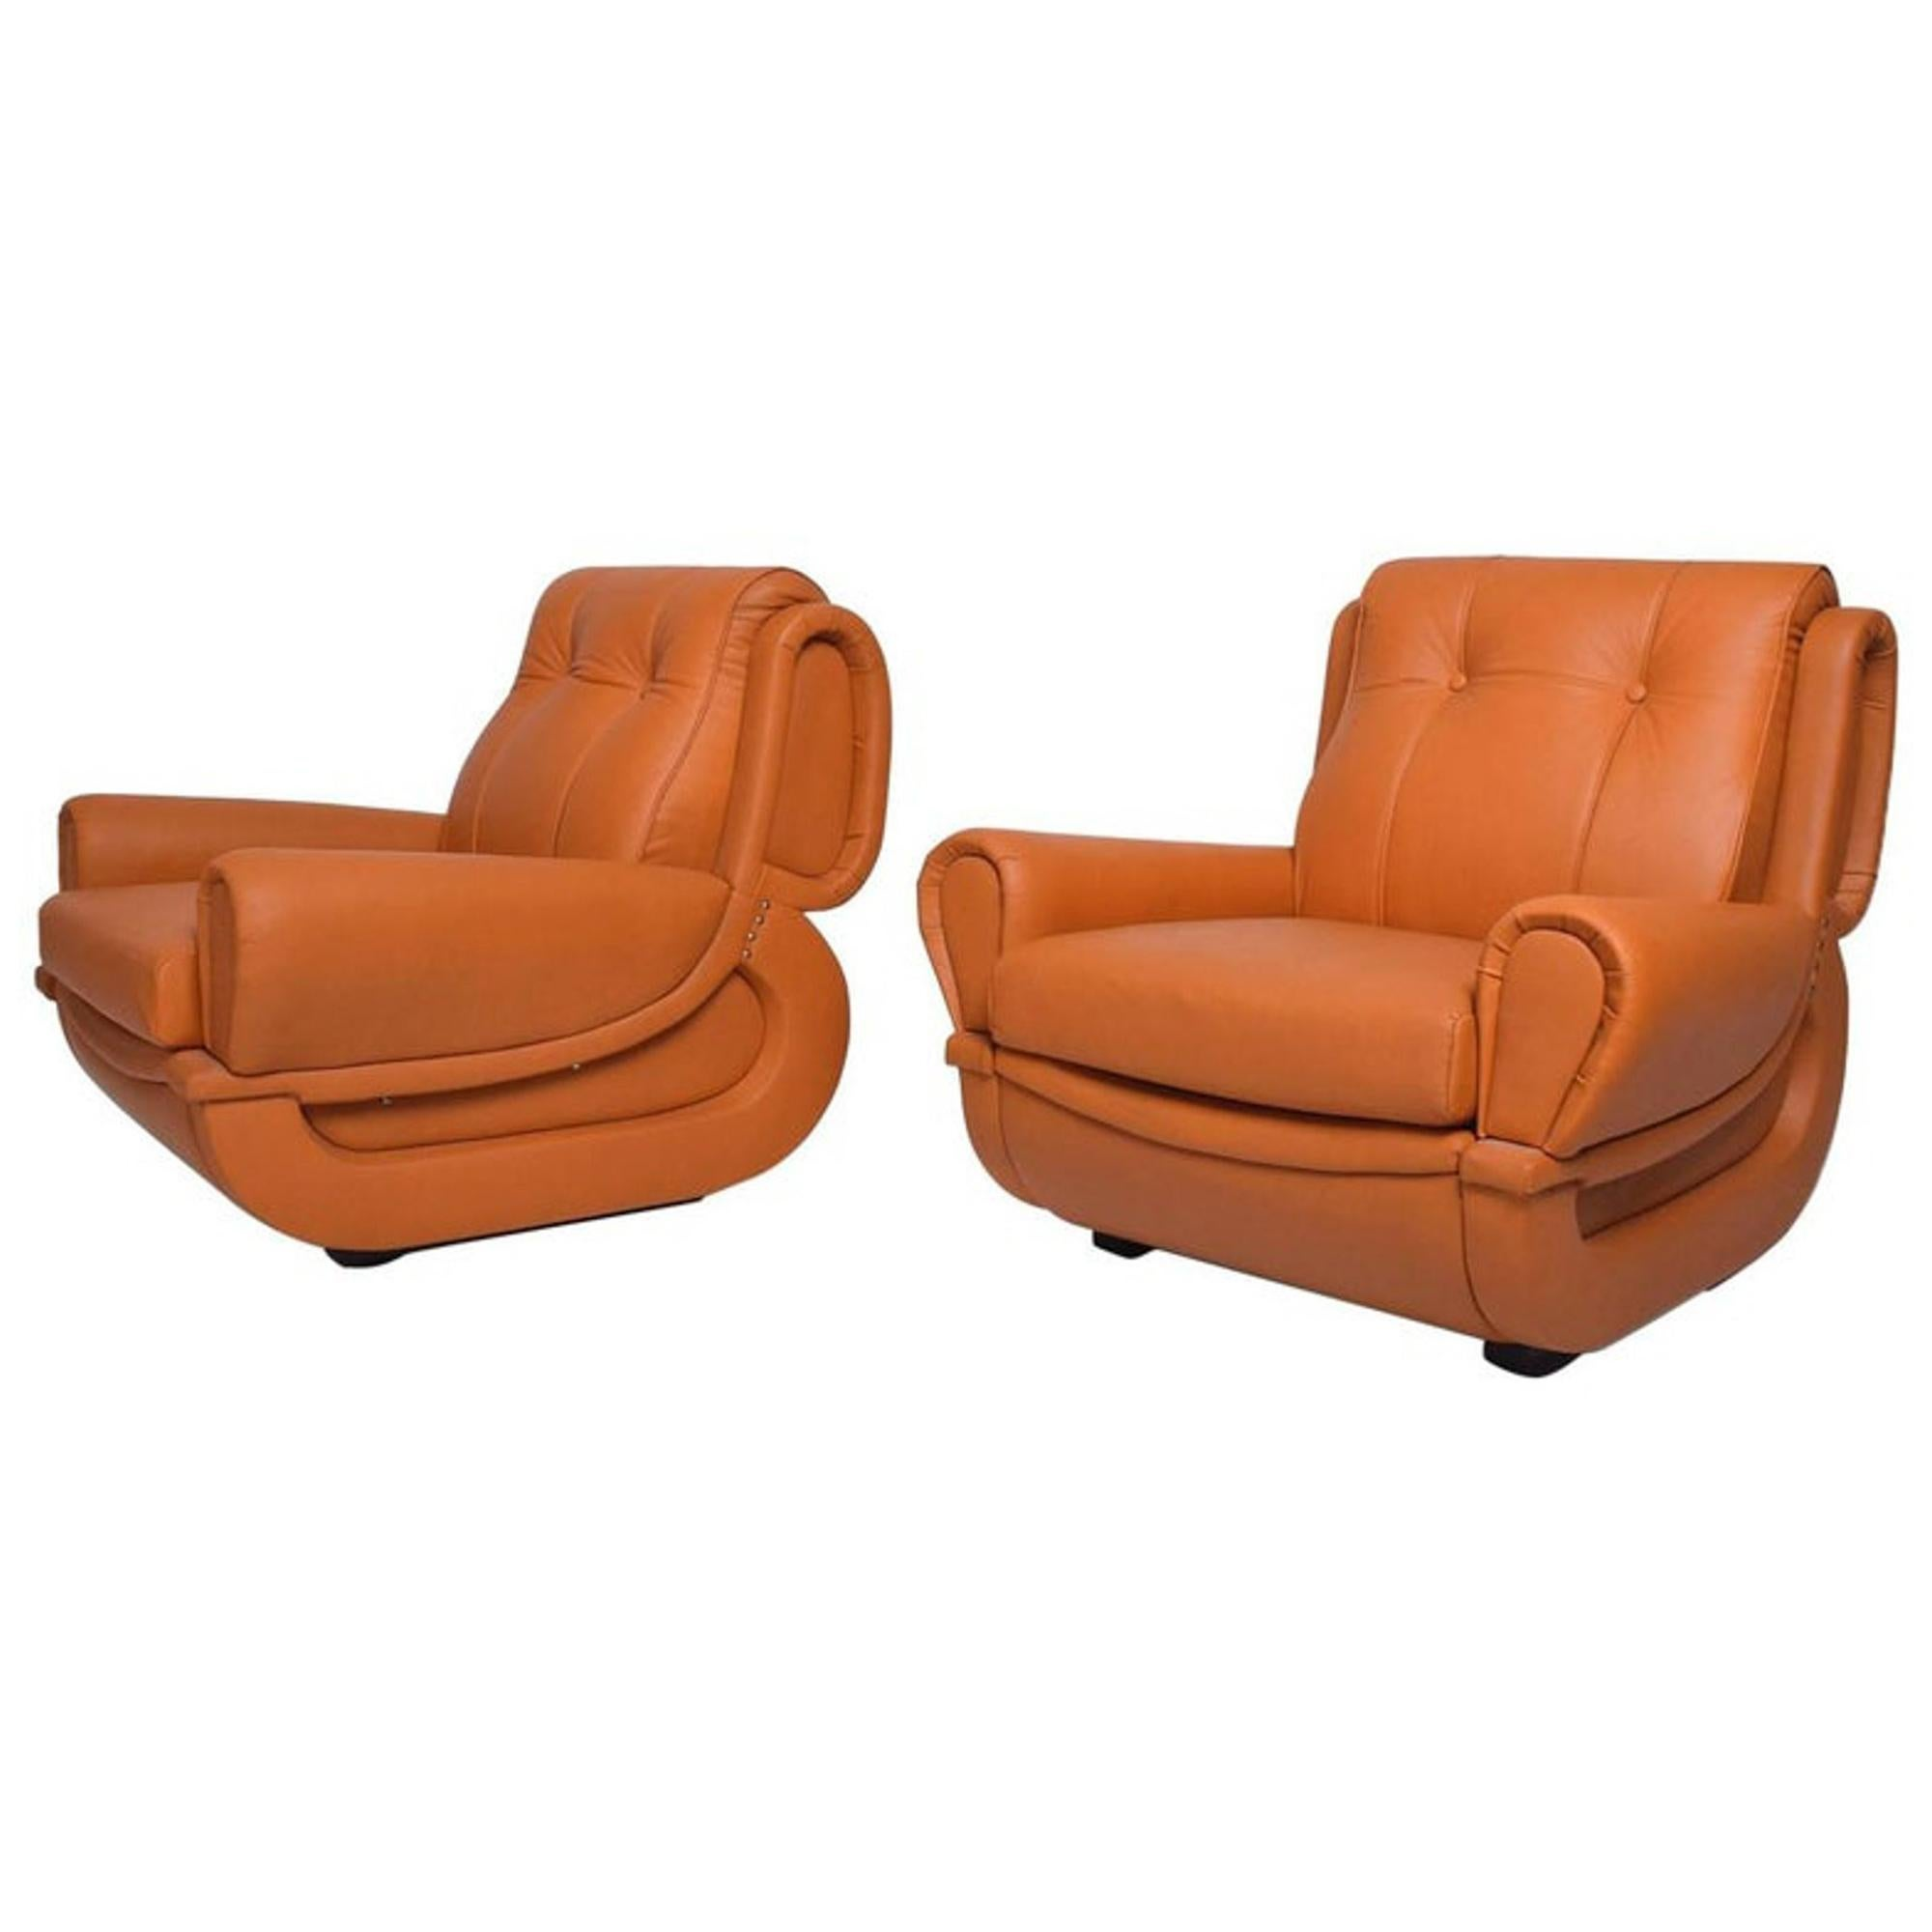 Style of Jean Michel Frank Leather Art Deco Chairs by Guiseppe Munari Italy 1960